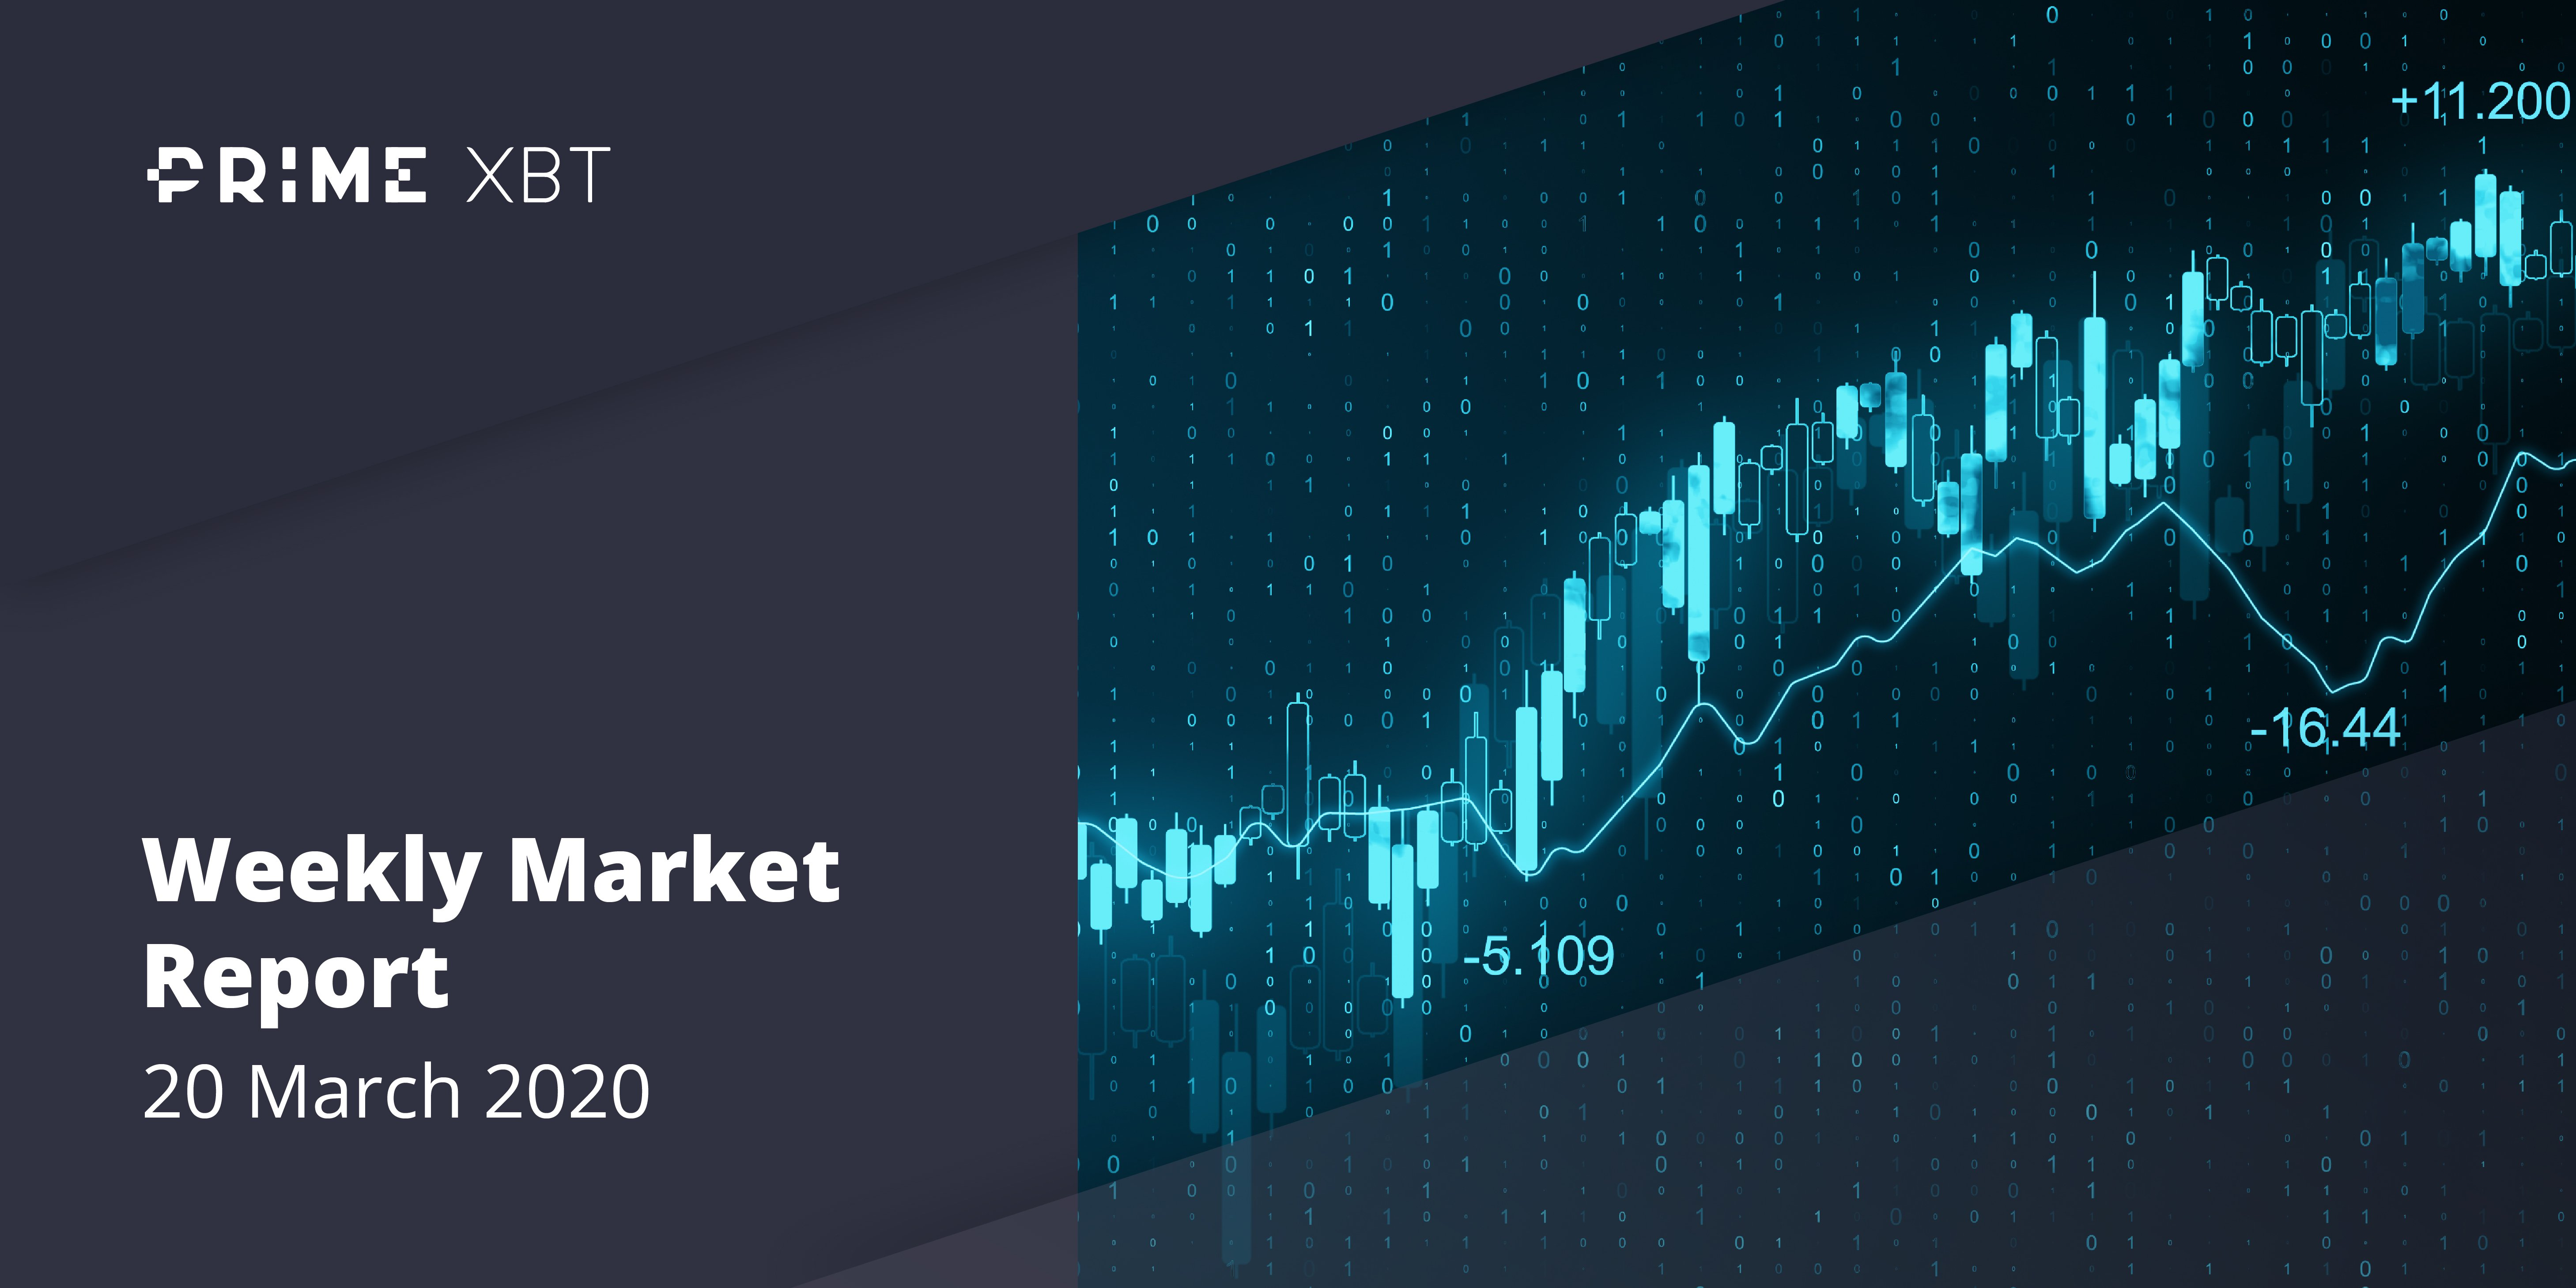 Cryptocurrency Market Report: Bitcoin Recovery Decouples from Stock Market, Takes Aim At Unseating the Dollar - 20.03.20